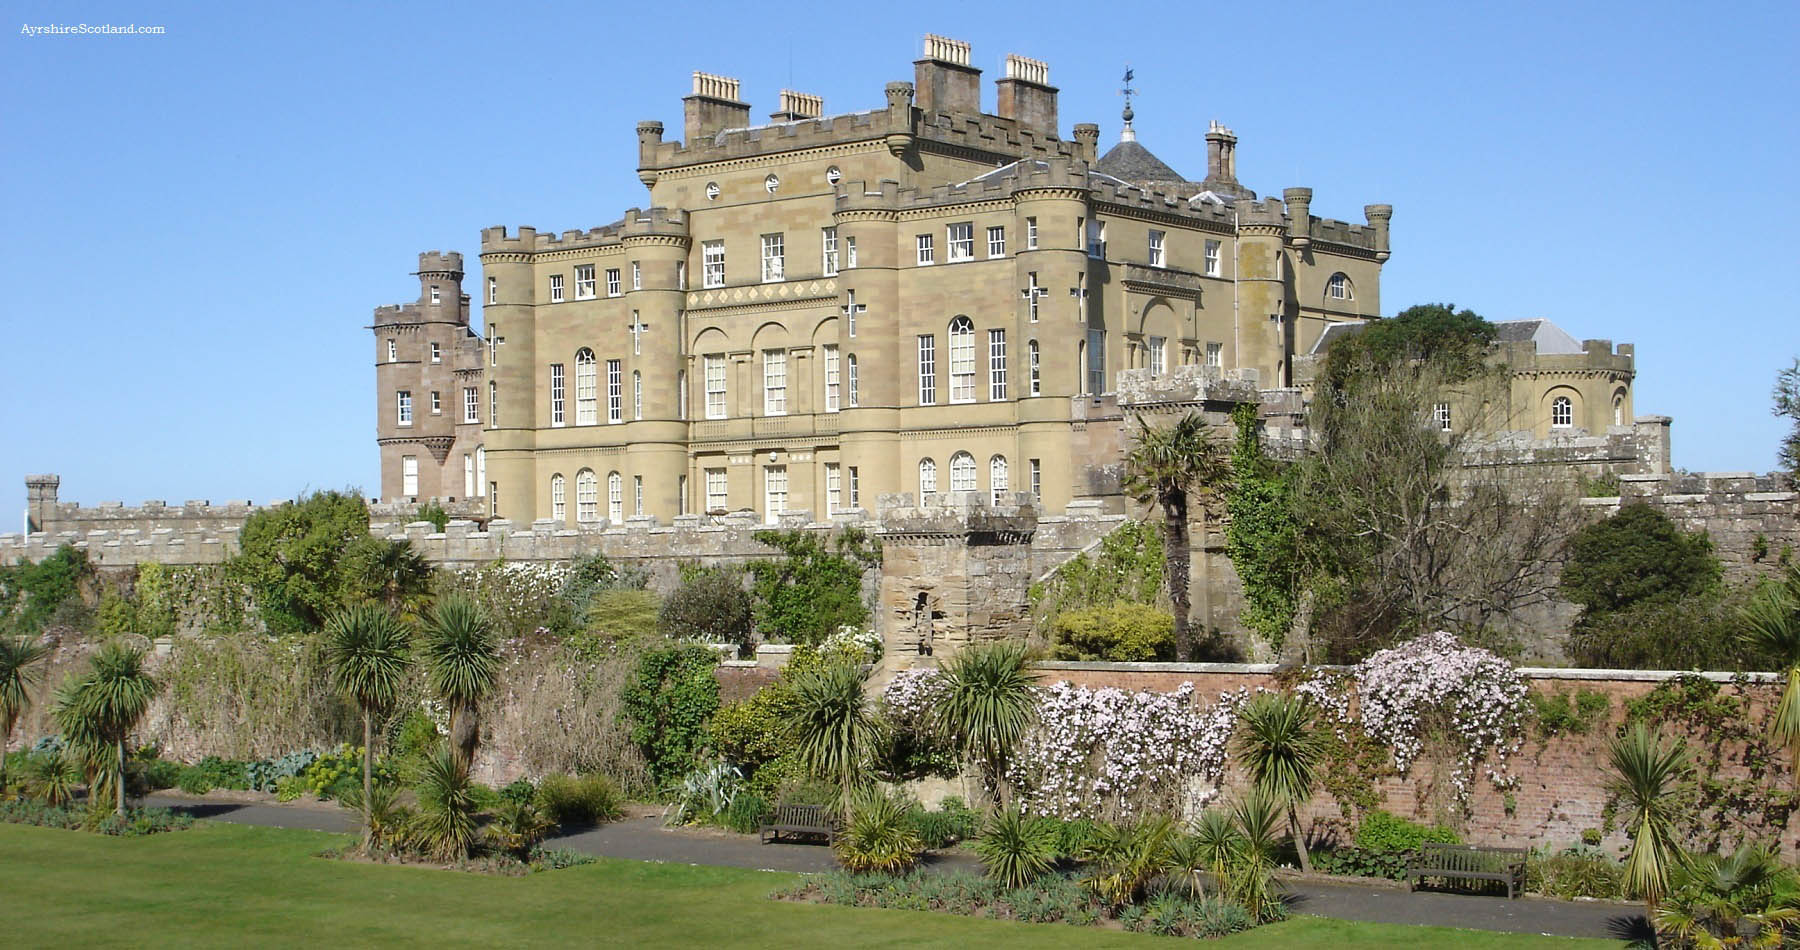 Bedroom detached house for sale in crathie ballater aberdeenshire - Culzean Castle Formerly A Rather Dull Fortified Tower House Culzean Was Transformed By Architect Robert Adam Into A Mansion Of Sumptuous Proport